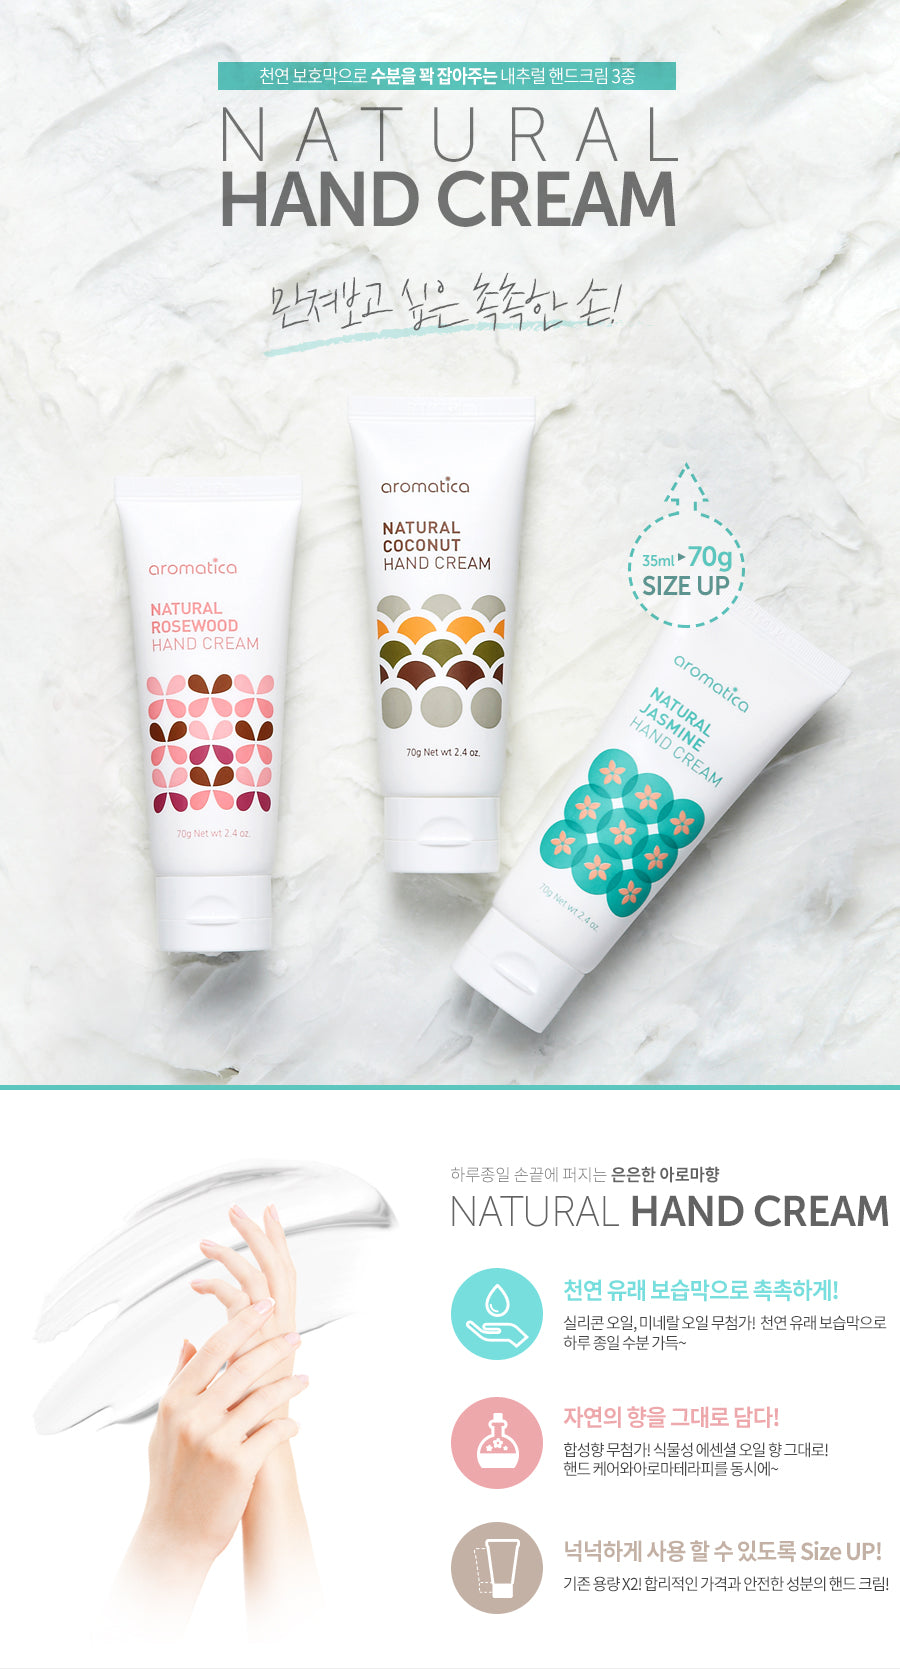 Aromatica - Natural Coconut Hand Cream